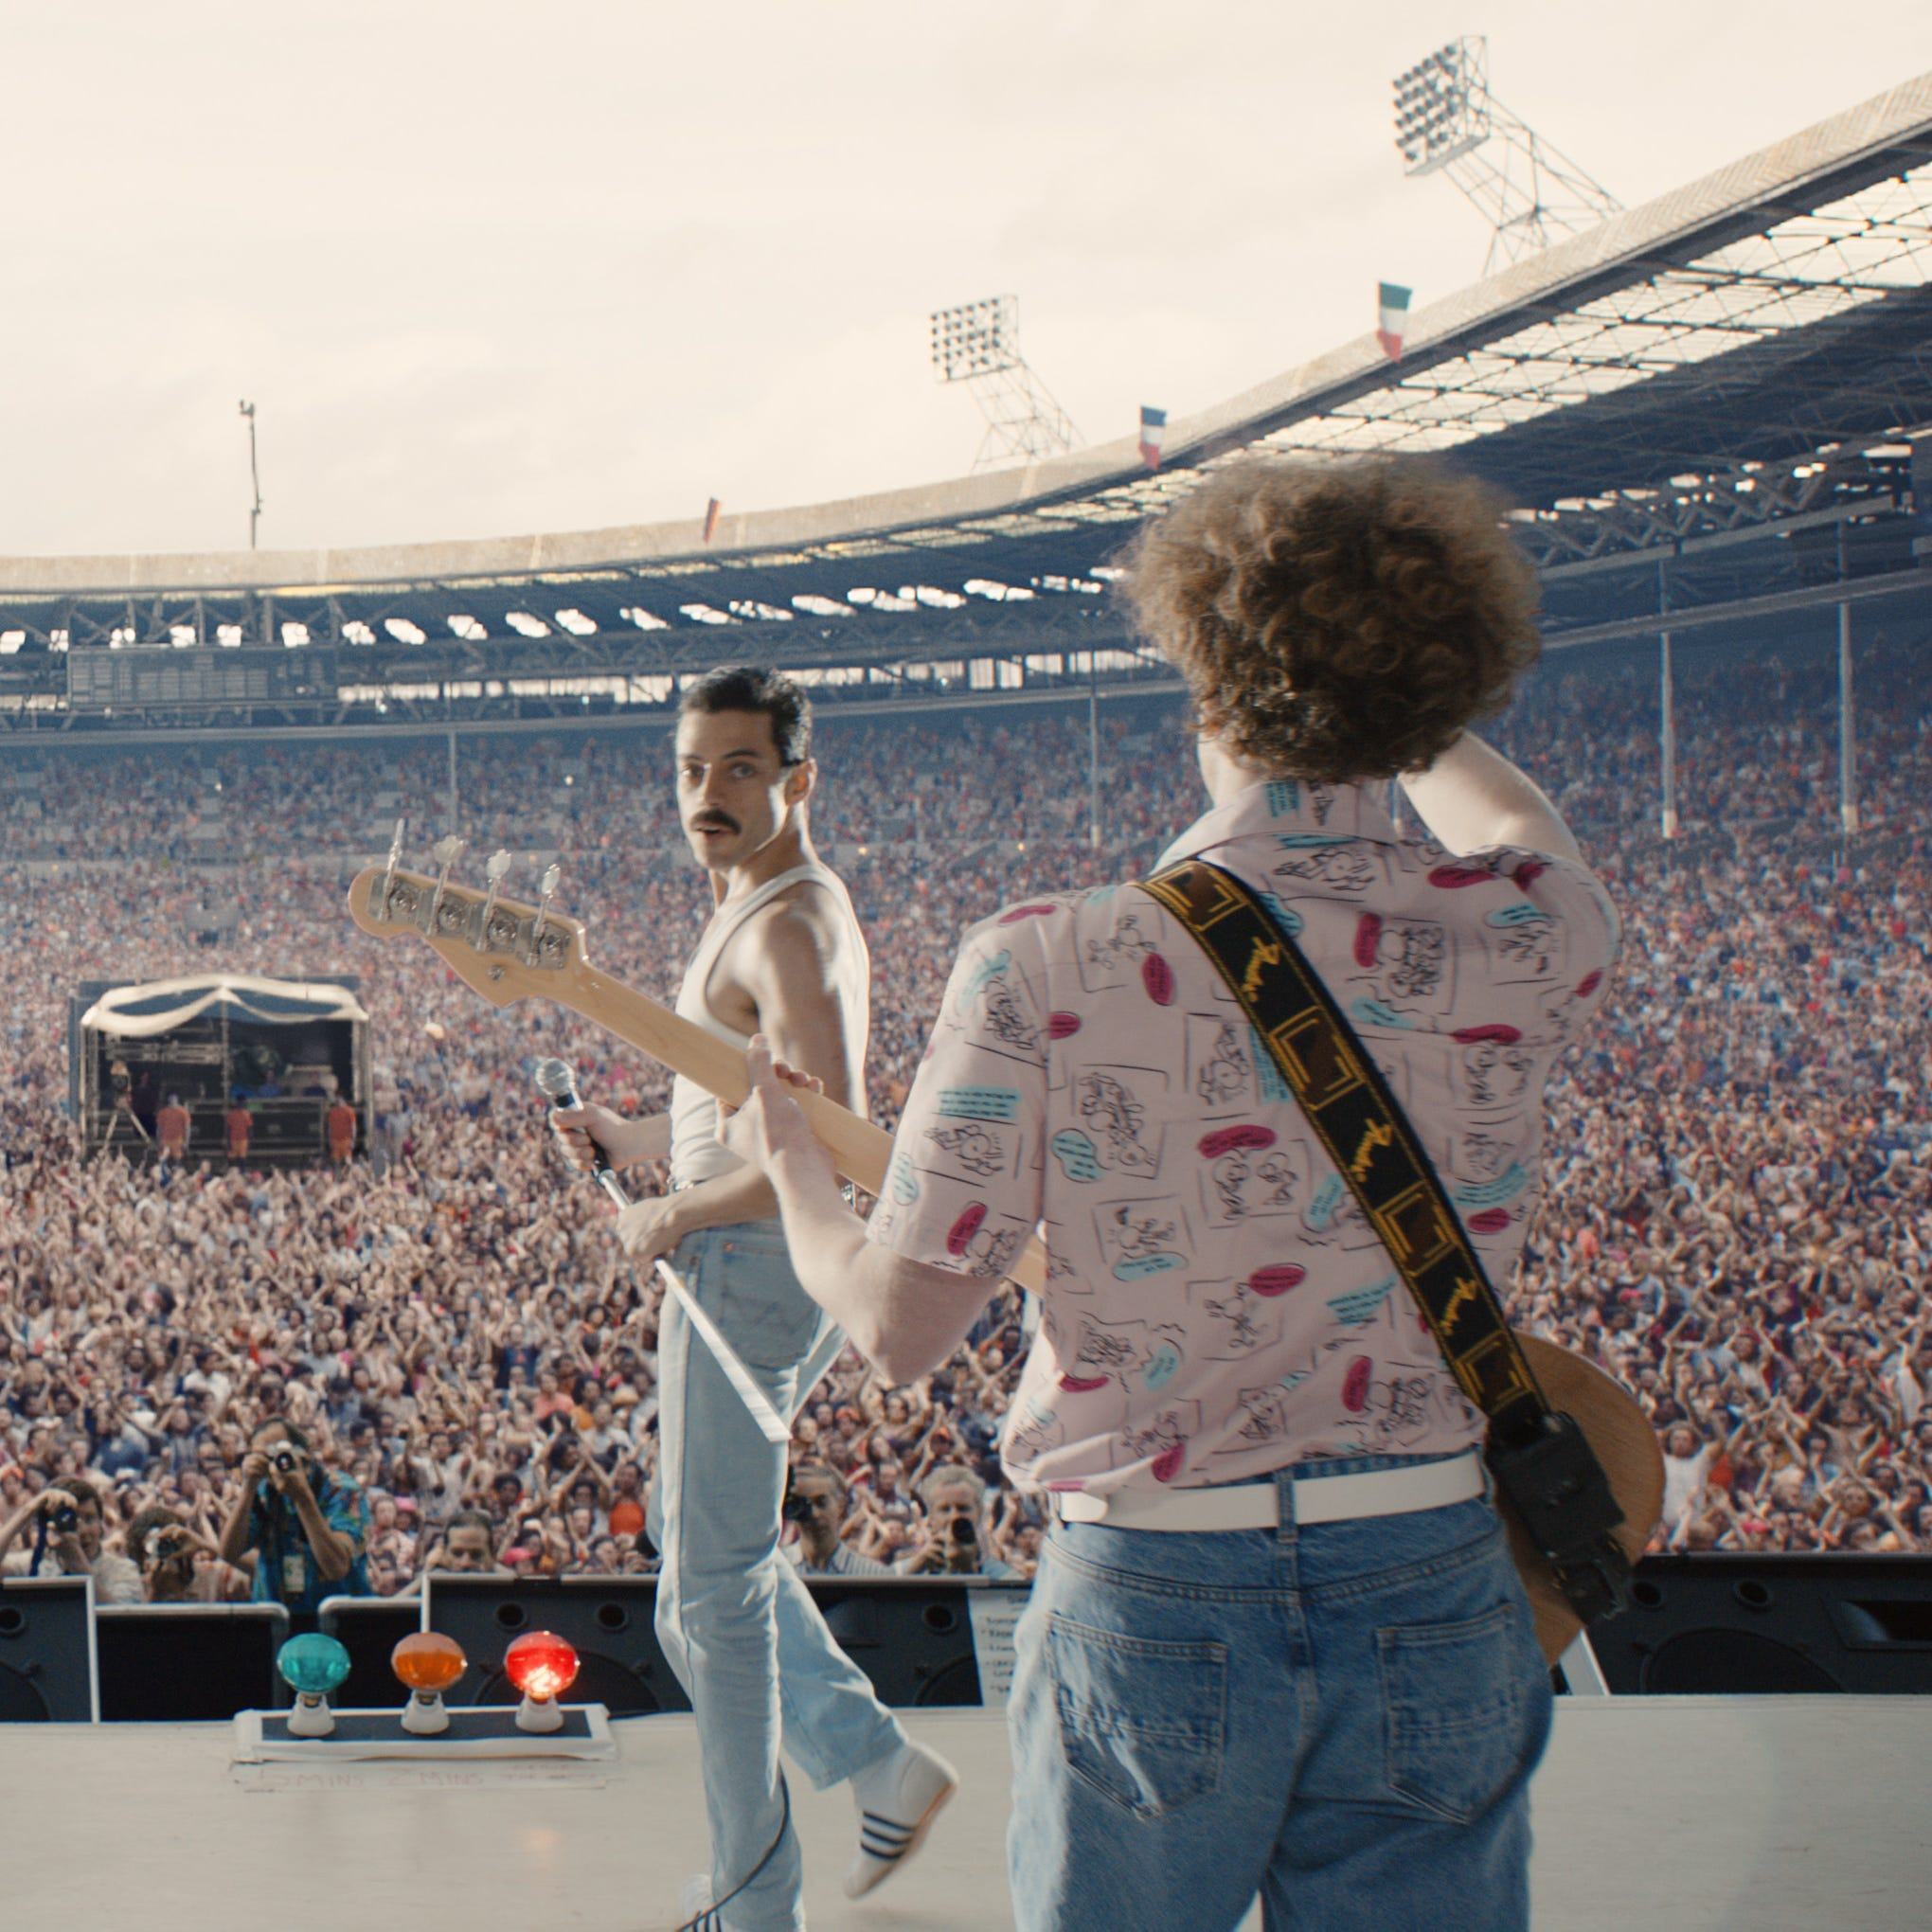 Freddie Mercury's story isn't exact in 'Bohemian Rhapsody.' But the film aims to blend truth and art.